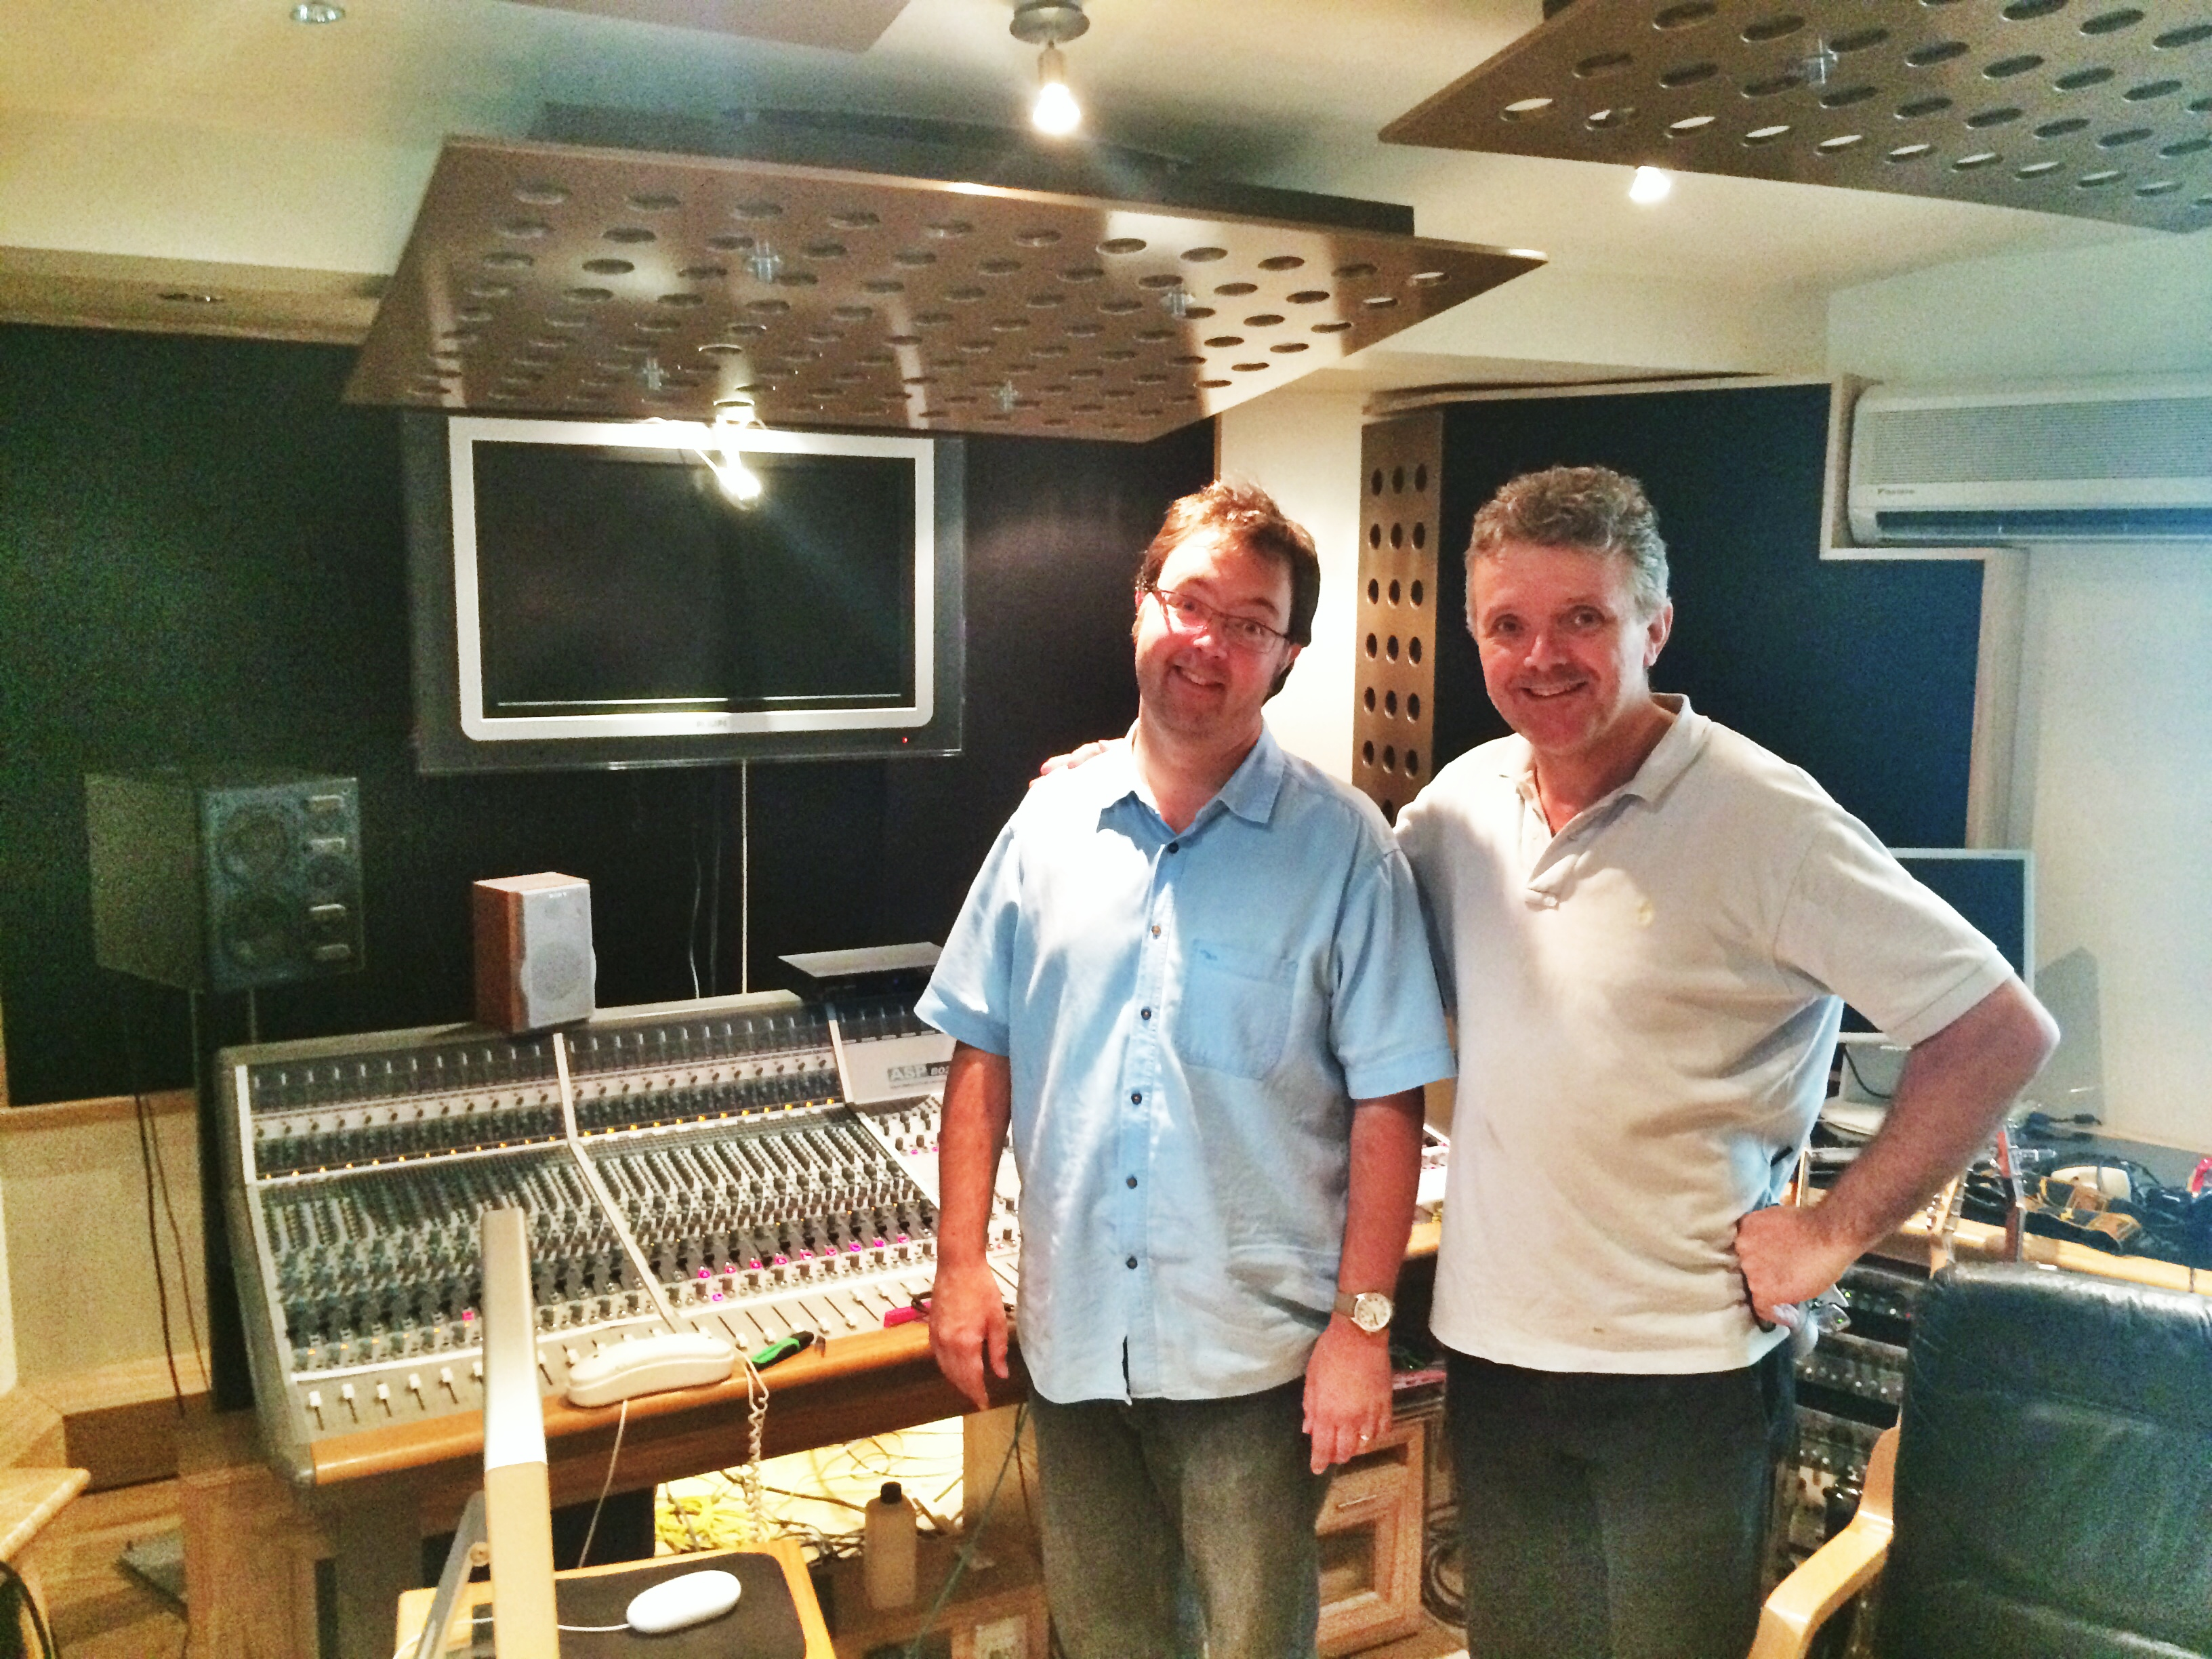 Niall Acott and Sean Kenny at Ten21 Studios